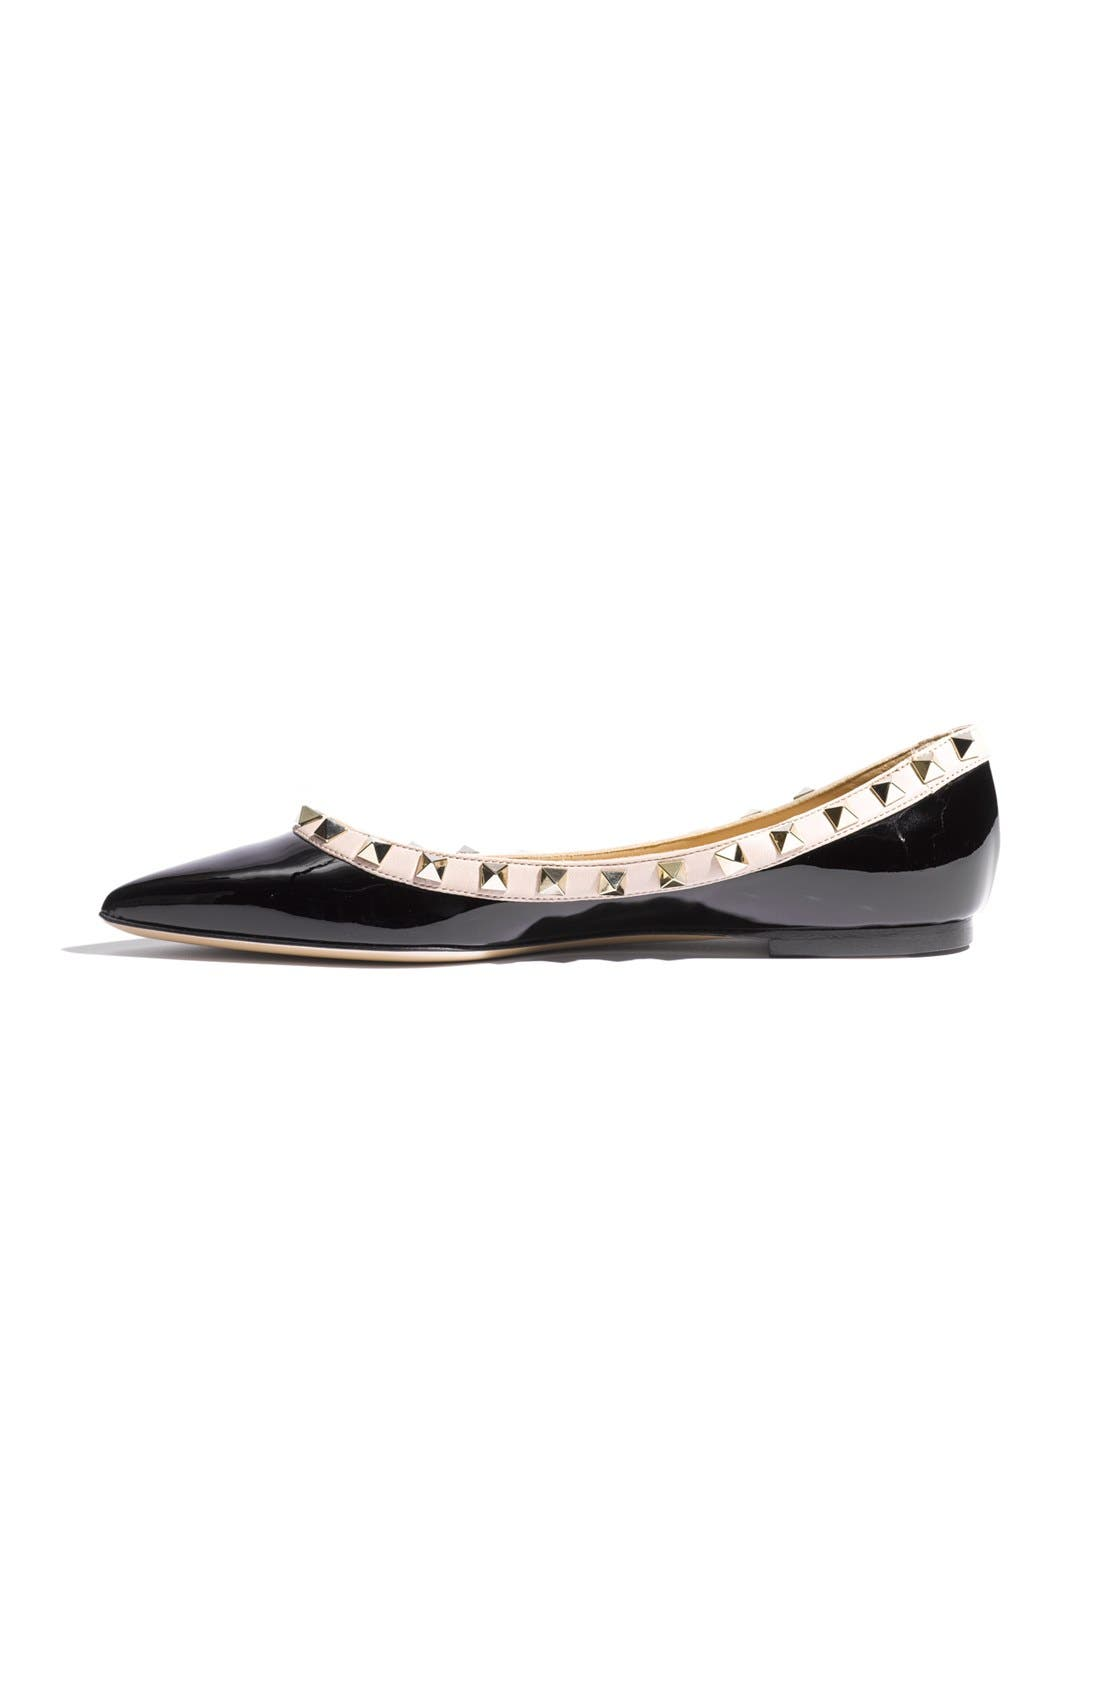 Valentino Rockstud Ballerina Flat,                             Alternate thumbnail 5, color,                             002